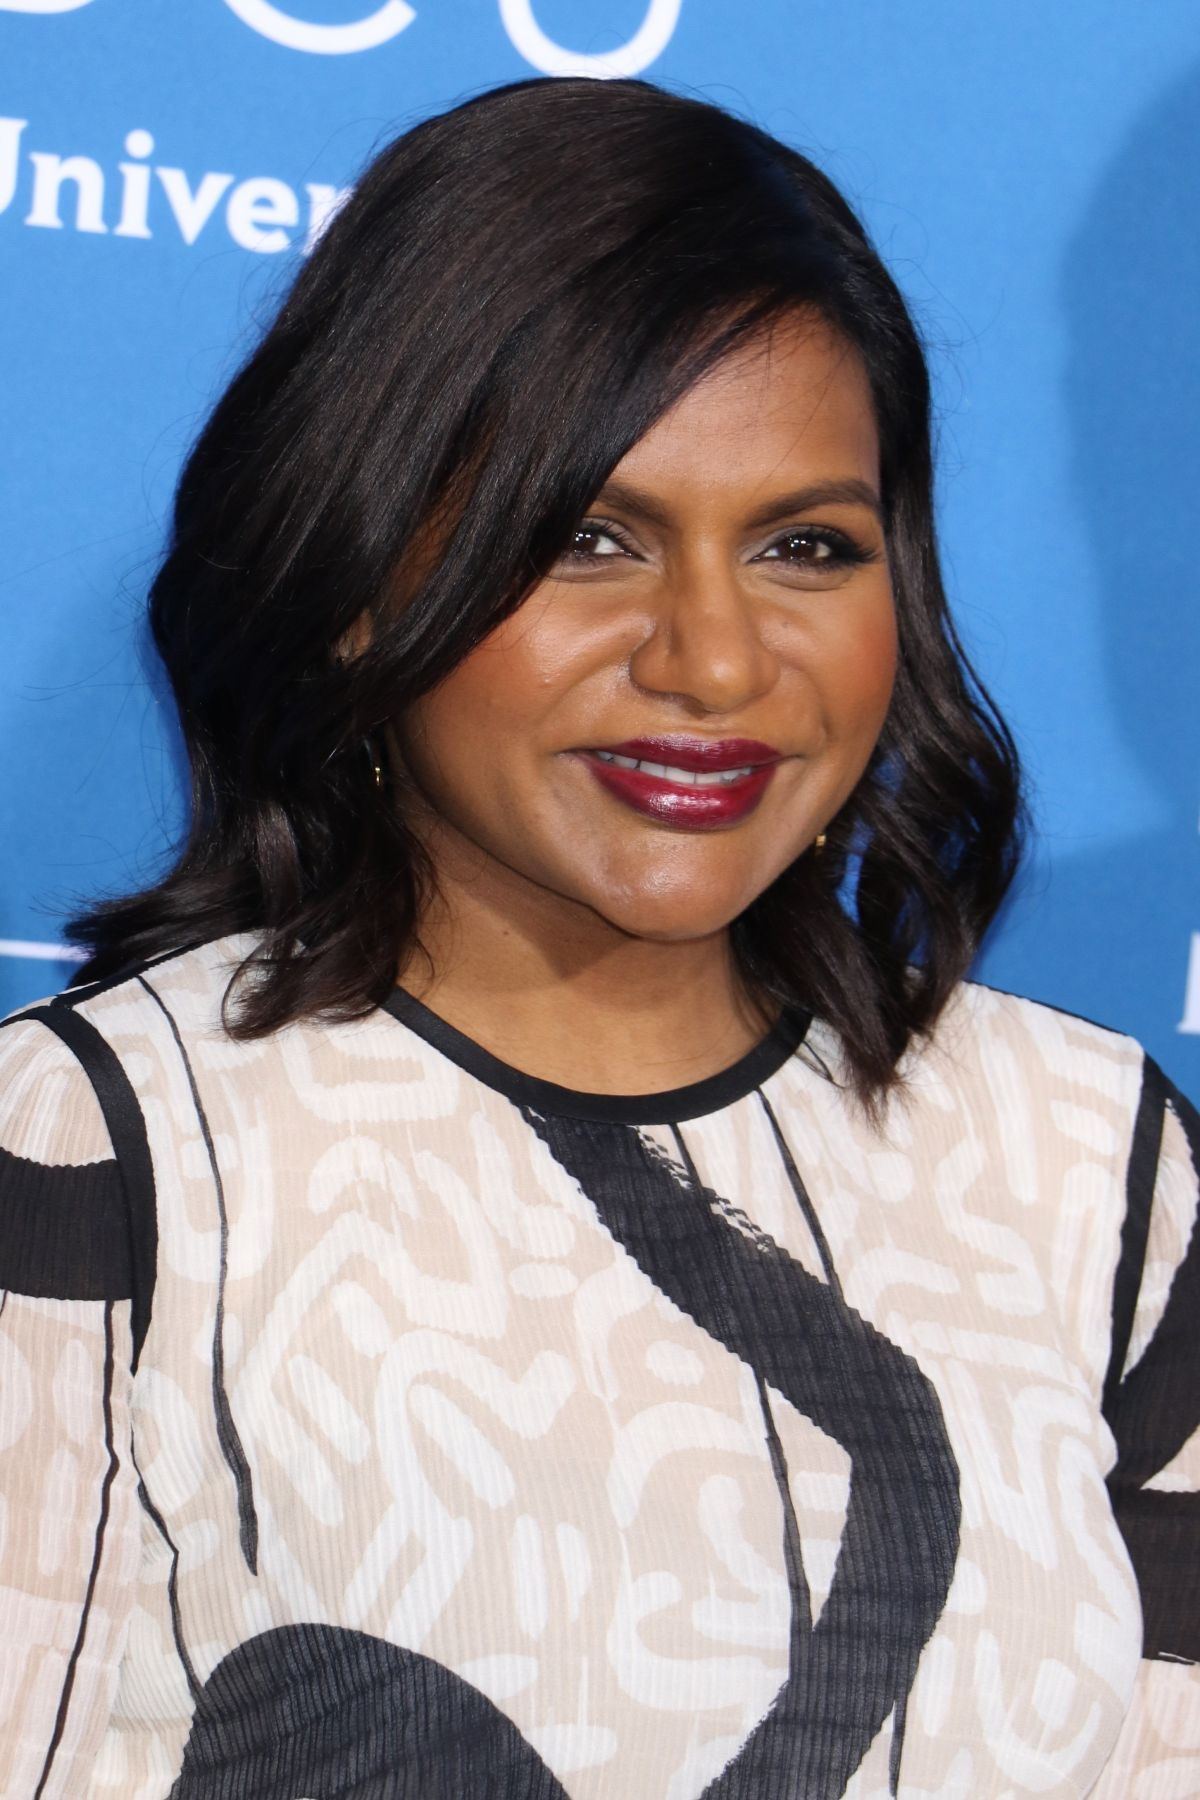 MINDY KALING at NBC/Universal Upfront in New York 05/15/2017